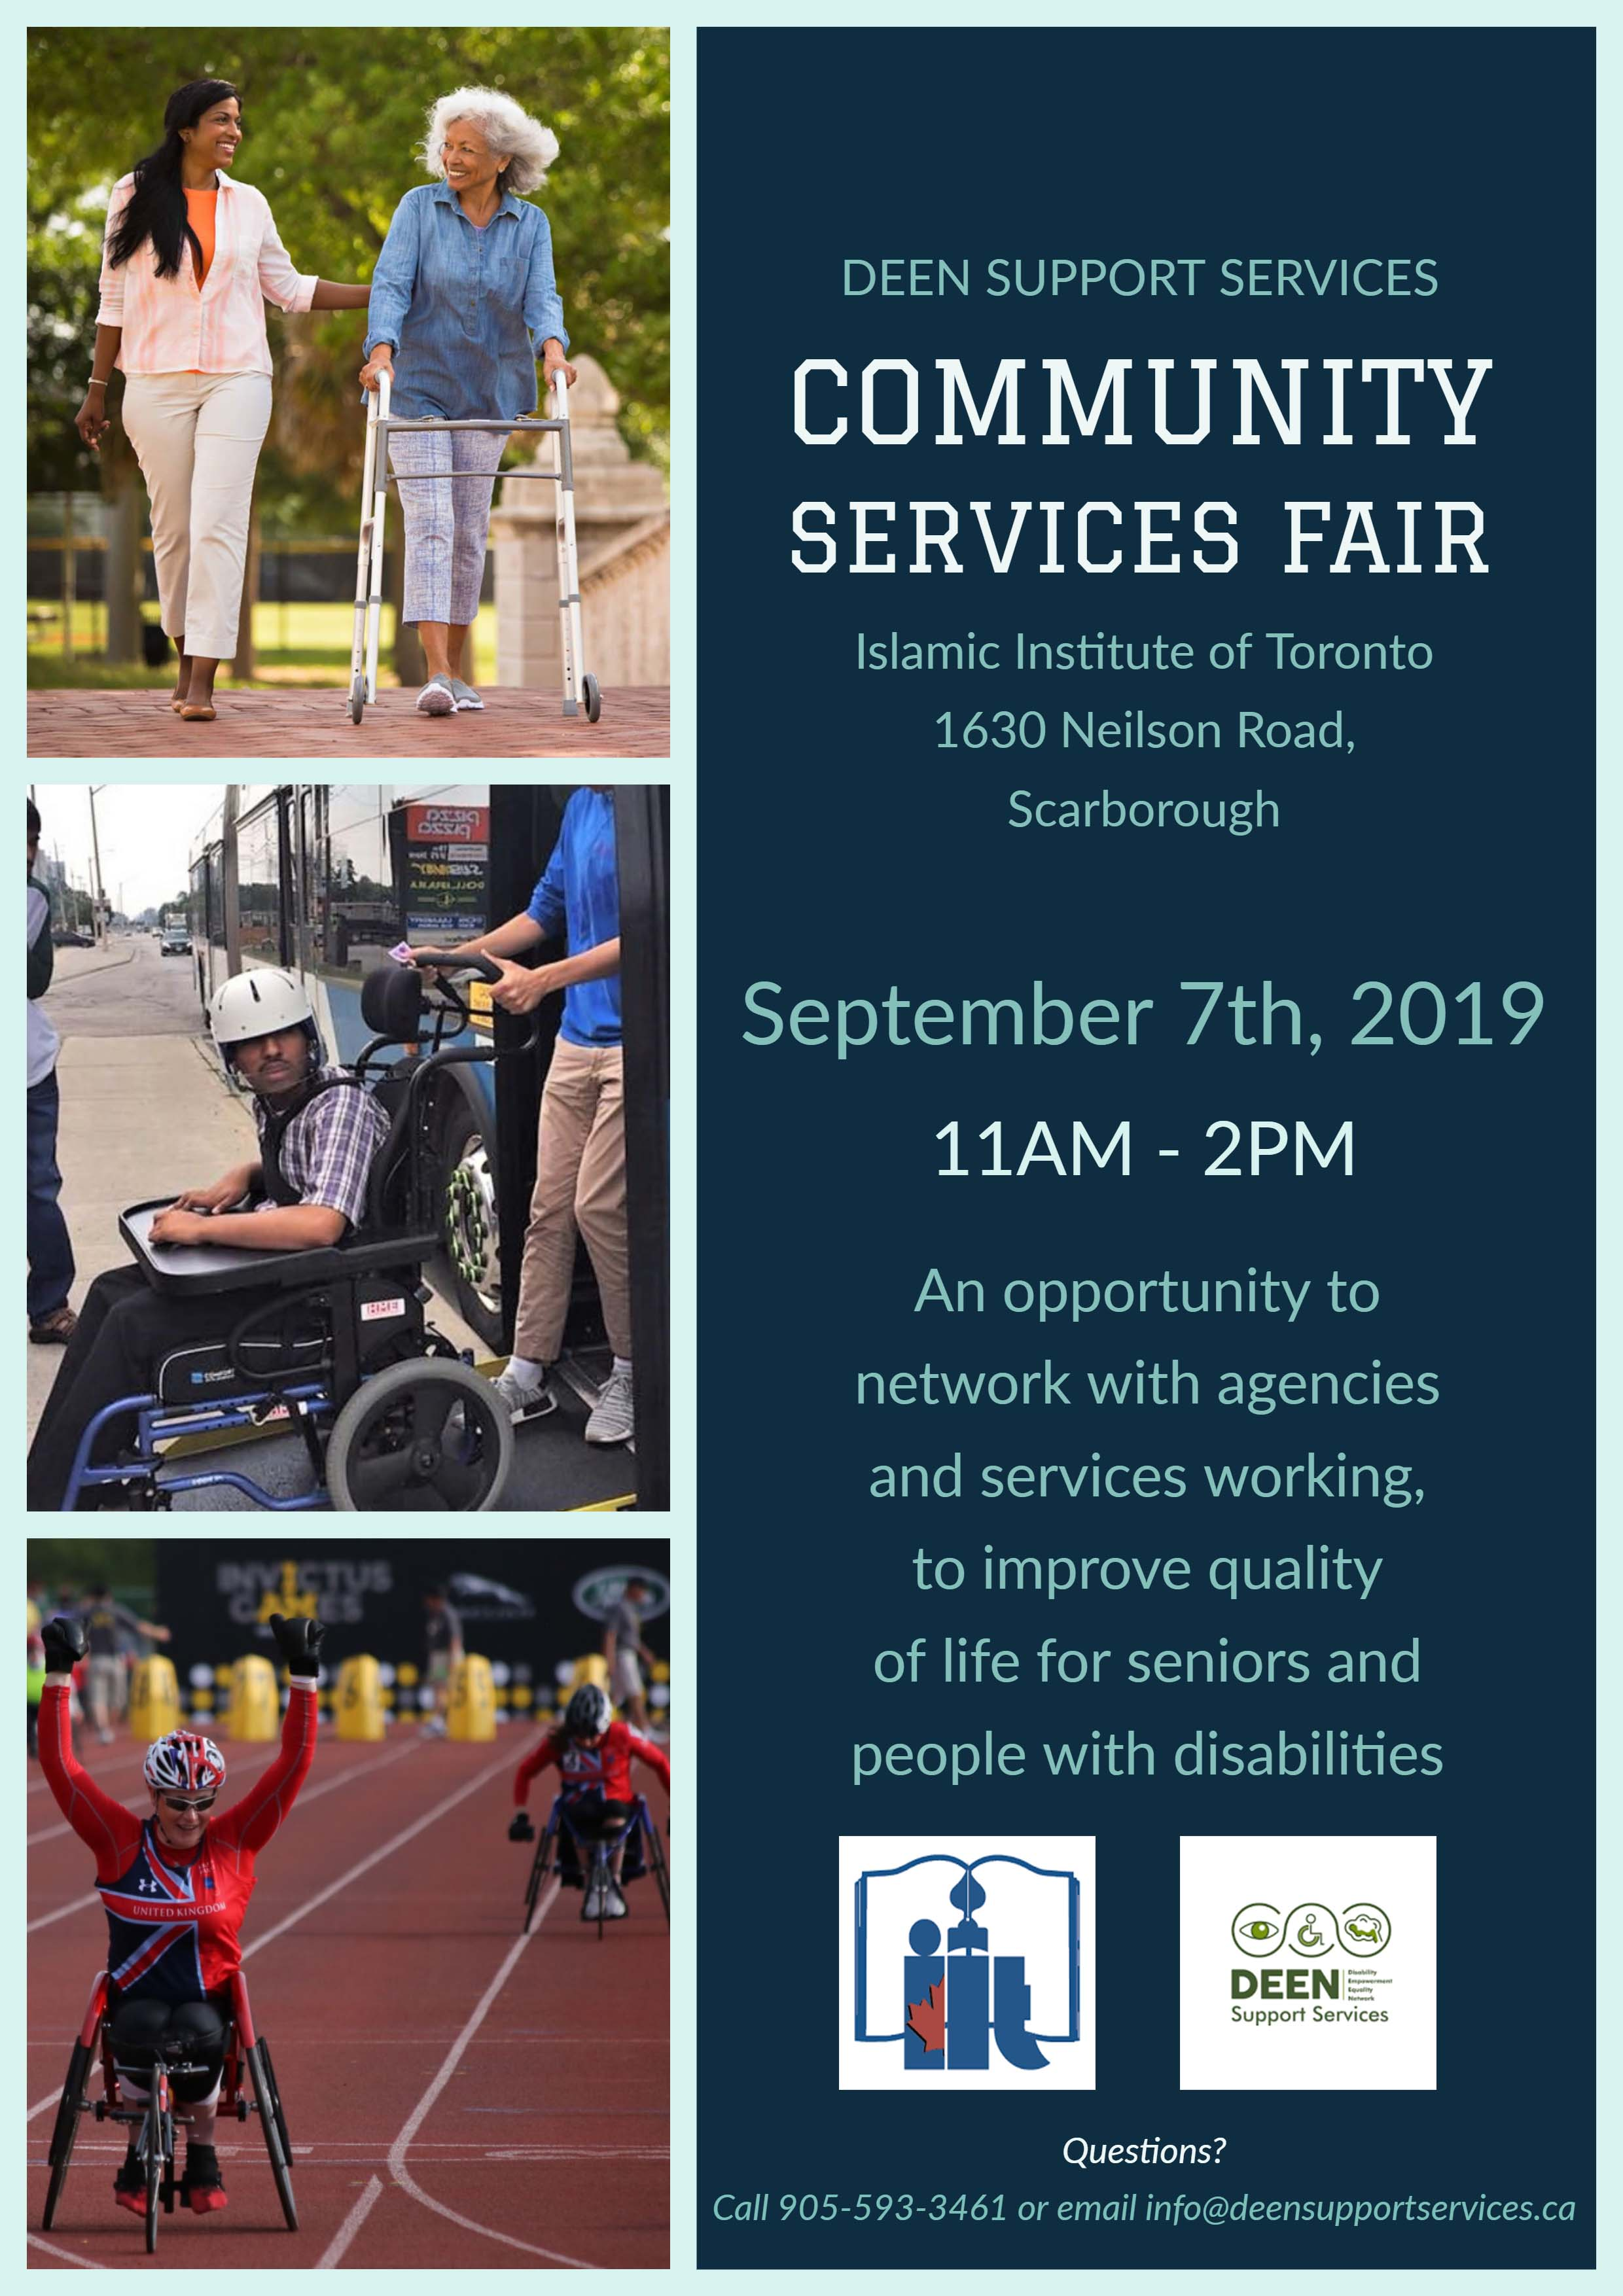 DEEN Support Services invites you to the Community Services Fair Taking place at Islamic Institute of Toronto, 1630 Neilson Road, Scarborough  On September 7th 2019 from 11AM - 2PM